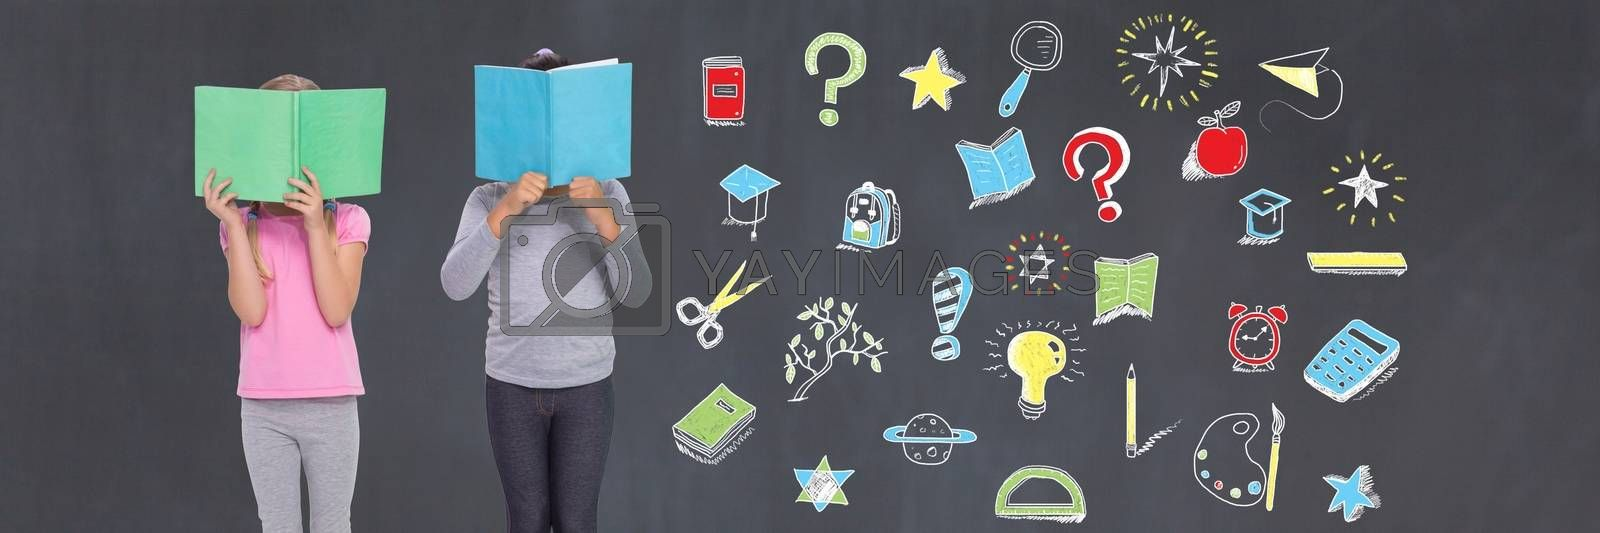 Digital composite of School kids reading and Education drawing on blackboard